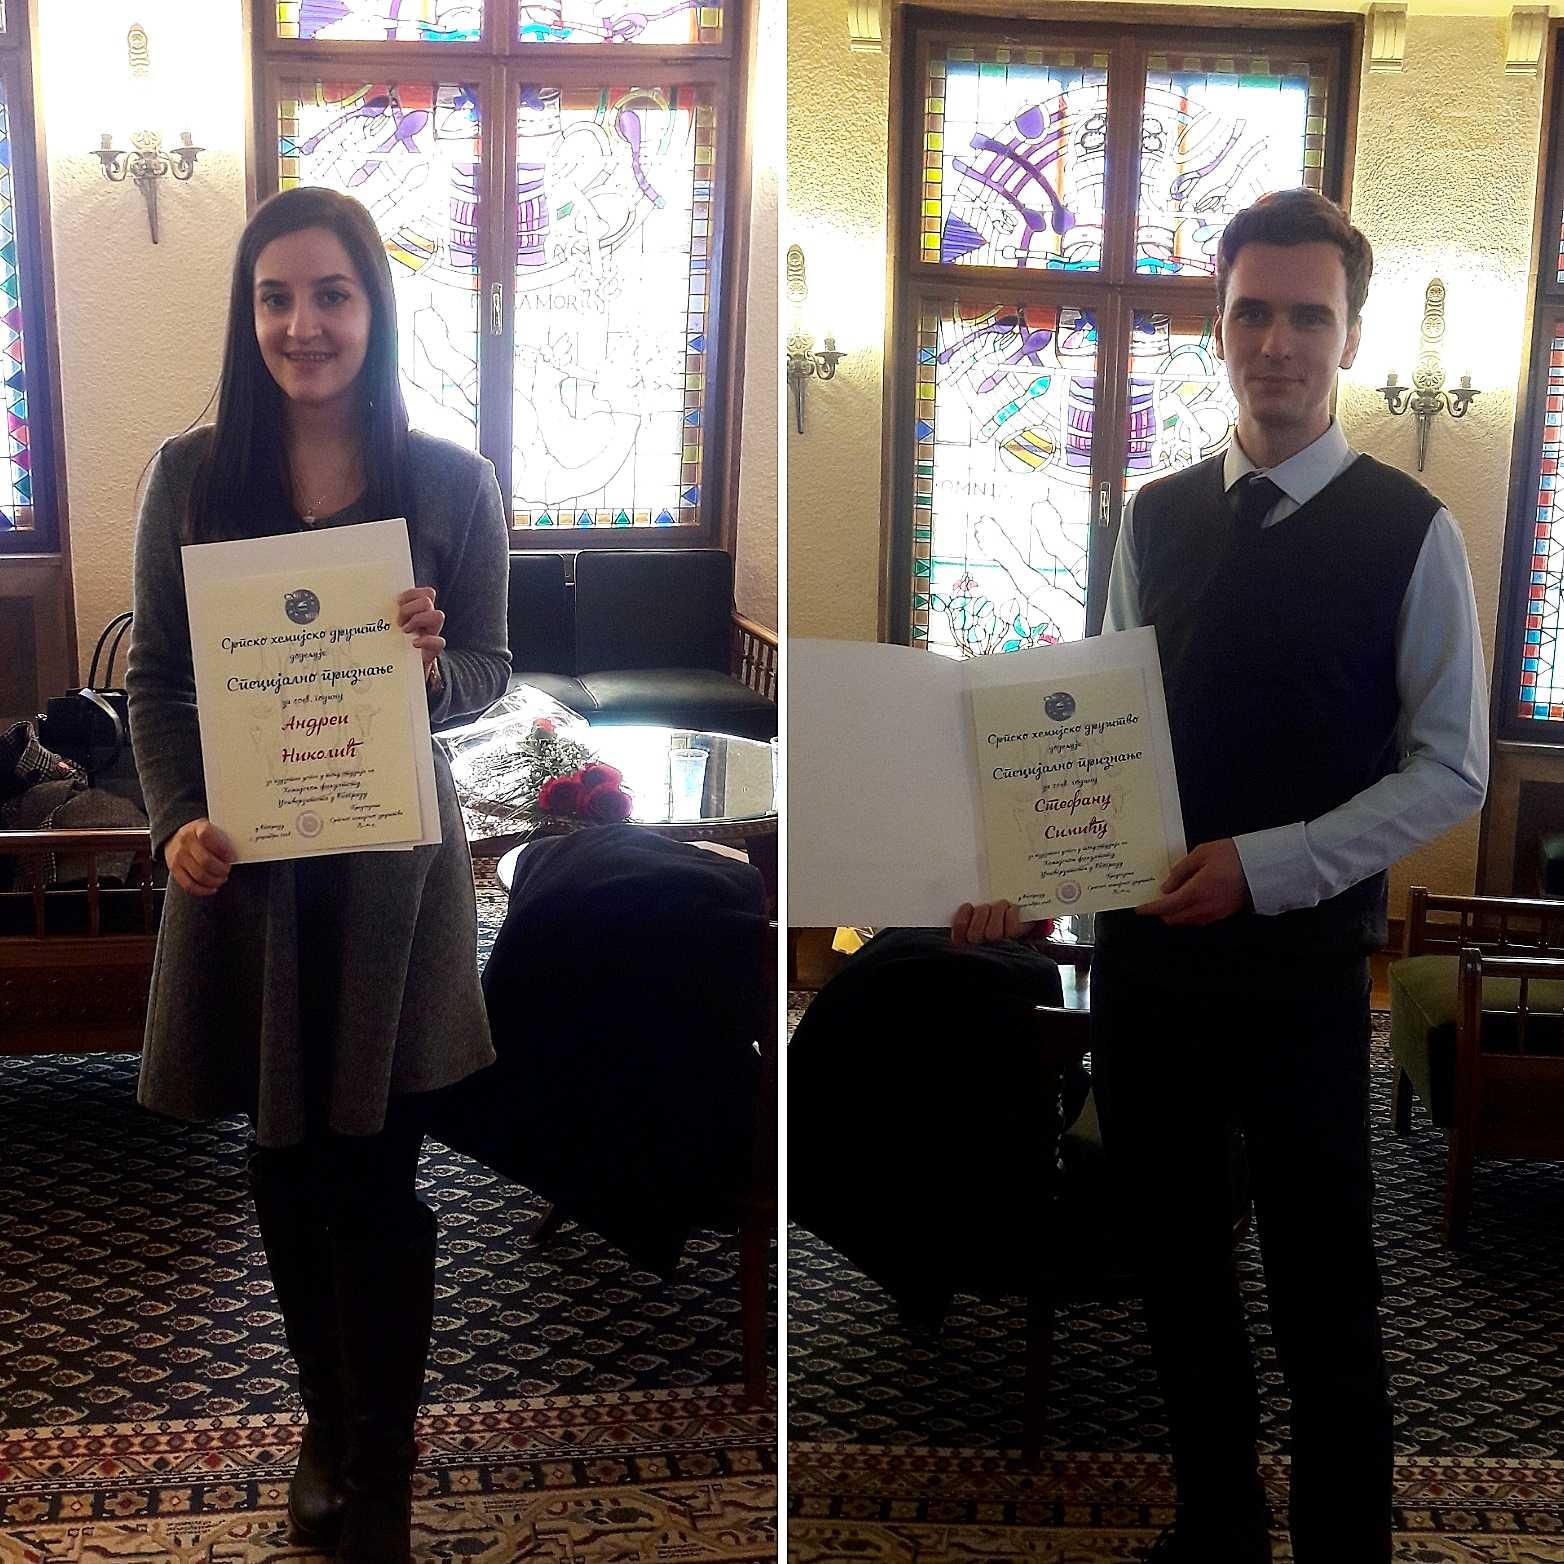 Andrea (left) and Stefan (right) with their awards after the ceremony